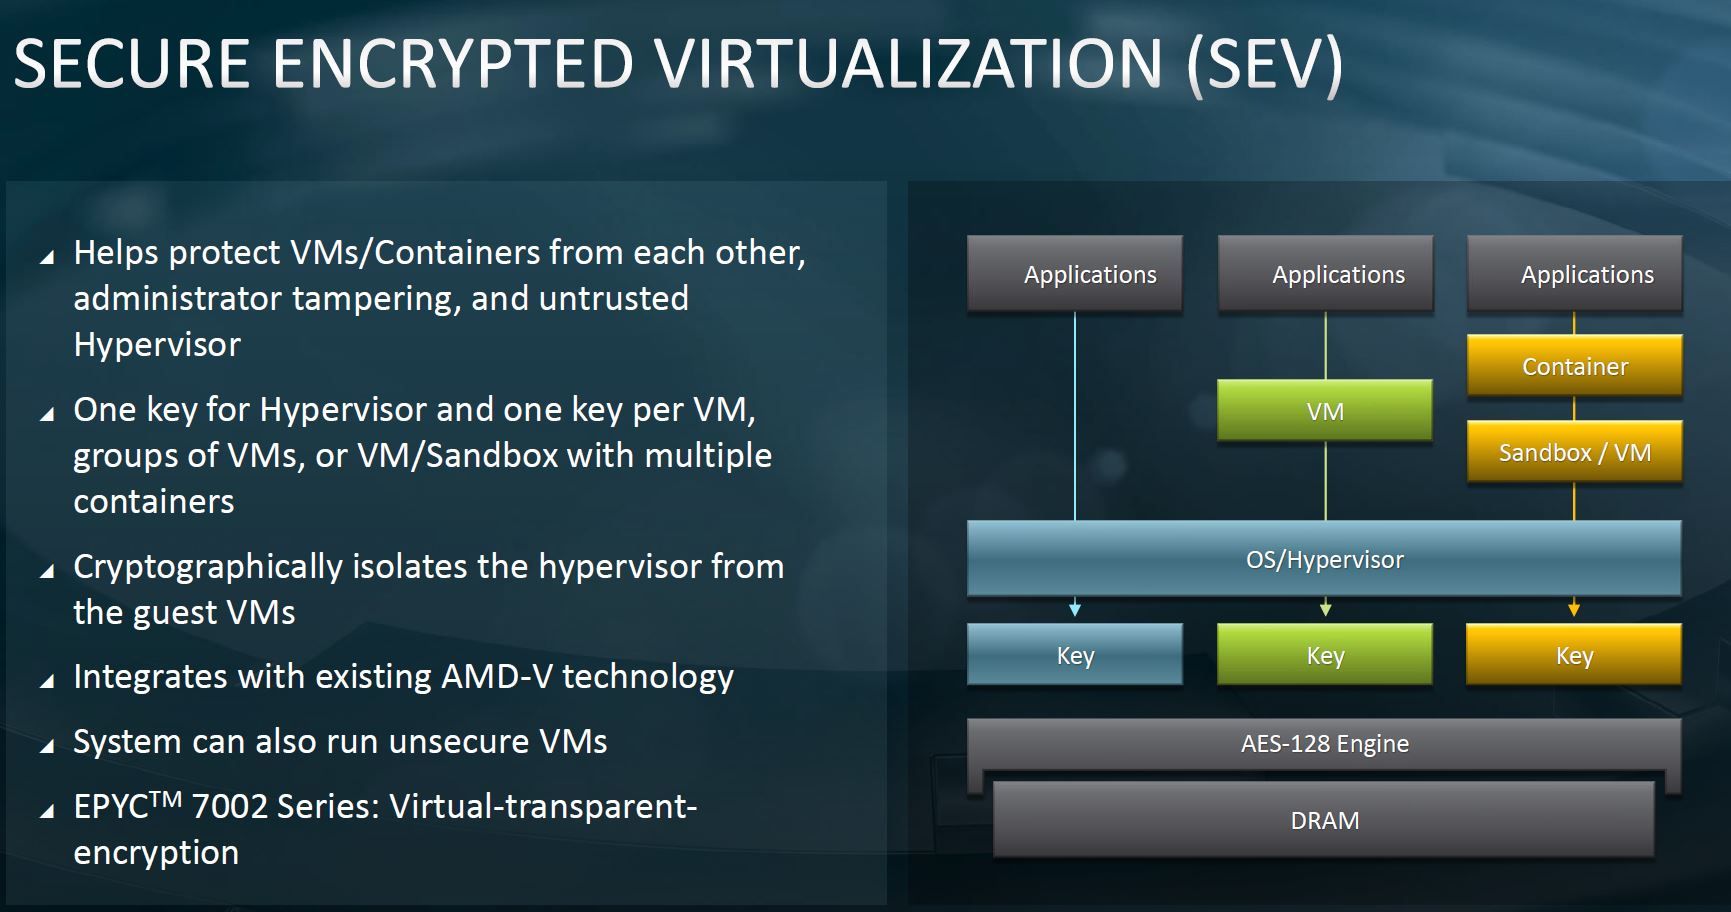 AMD EPYC 7002 Platform Secure Encrypted Virtualization